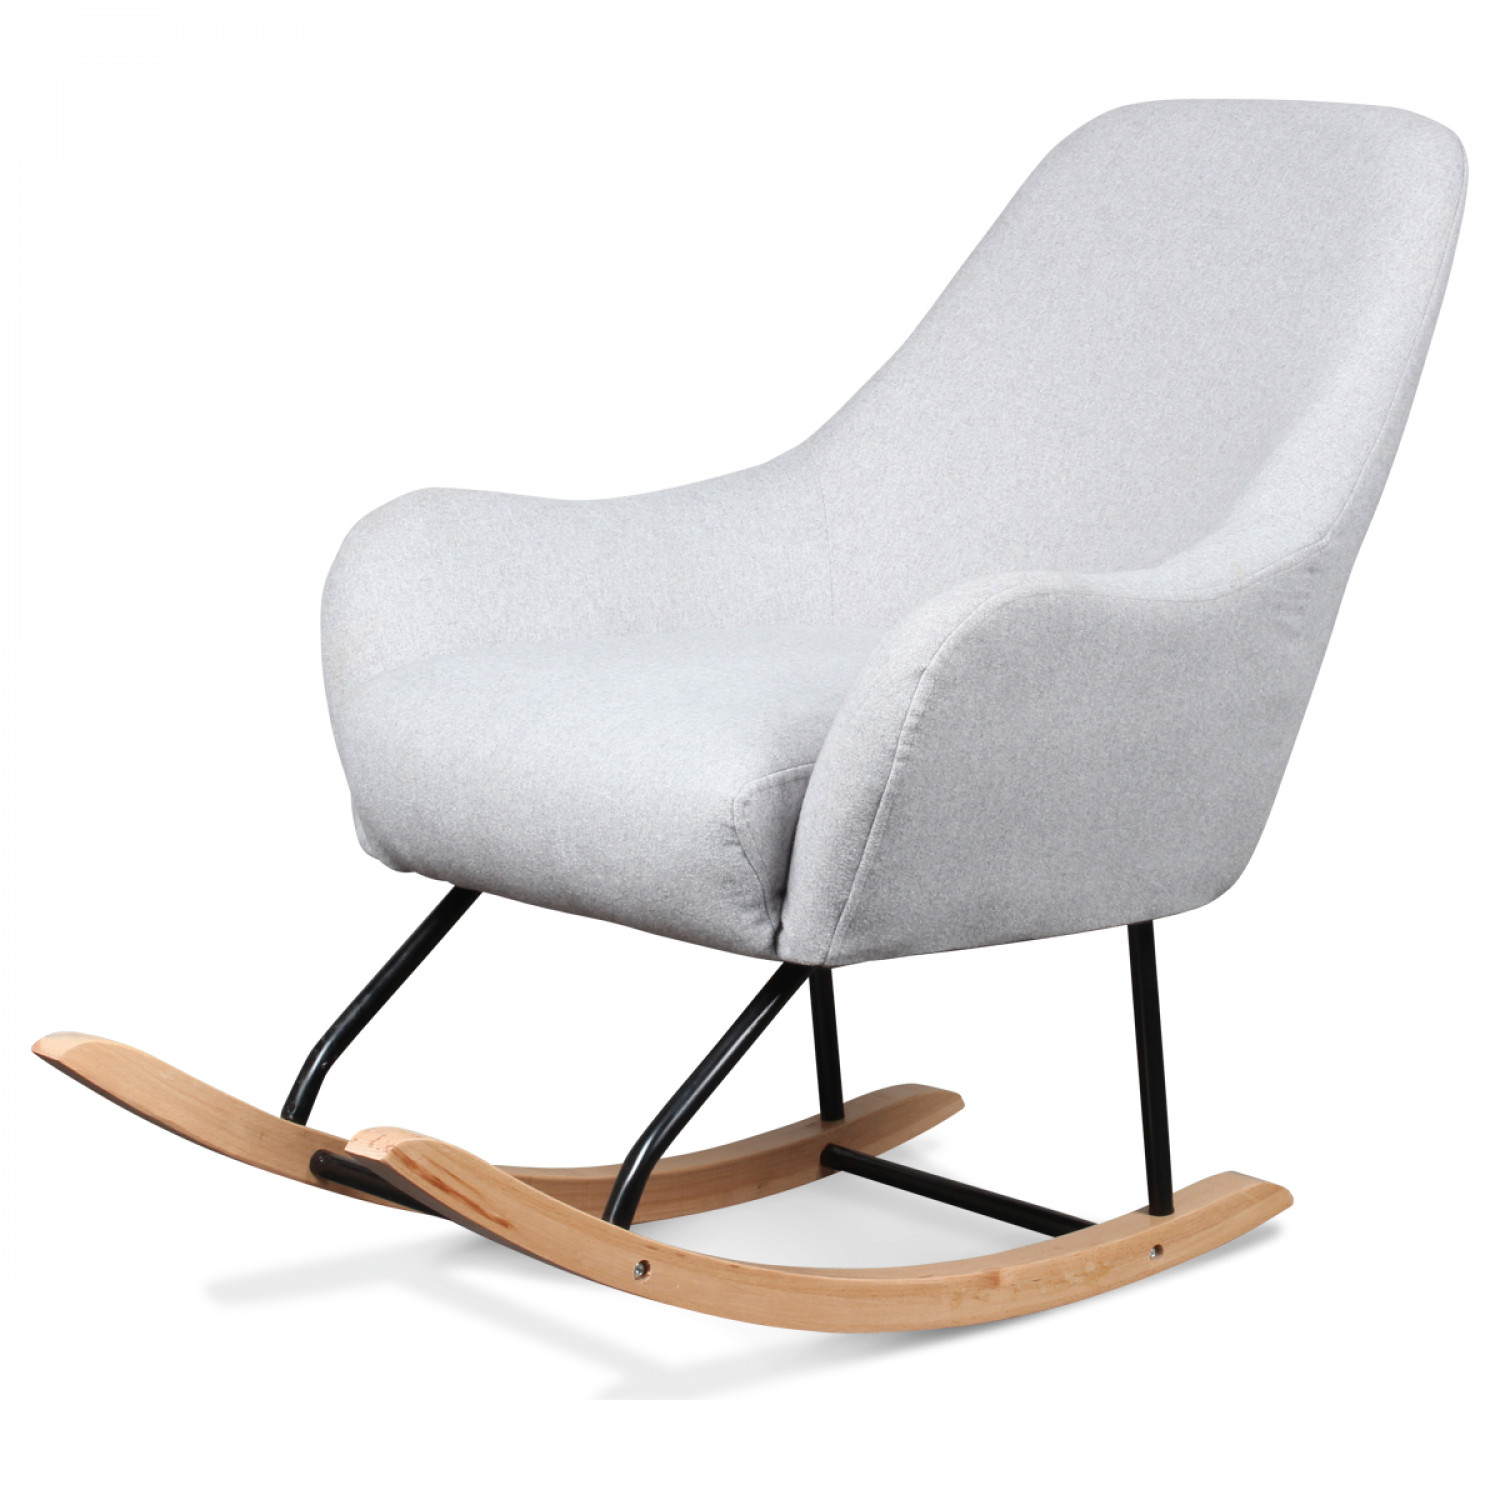 fauteuil rocking chair design scandinave bois et m tal. Black Bedroom Furniture Sets. Home Design Ideas